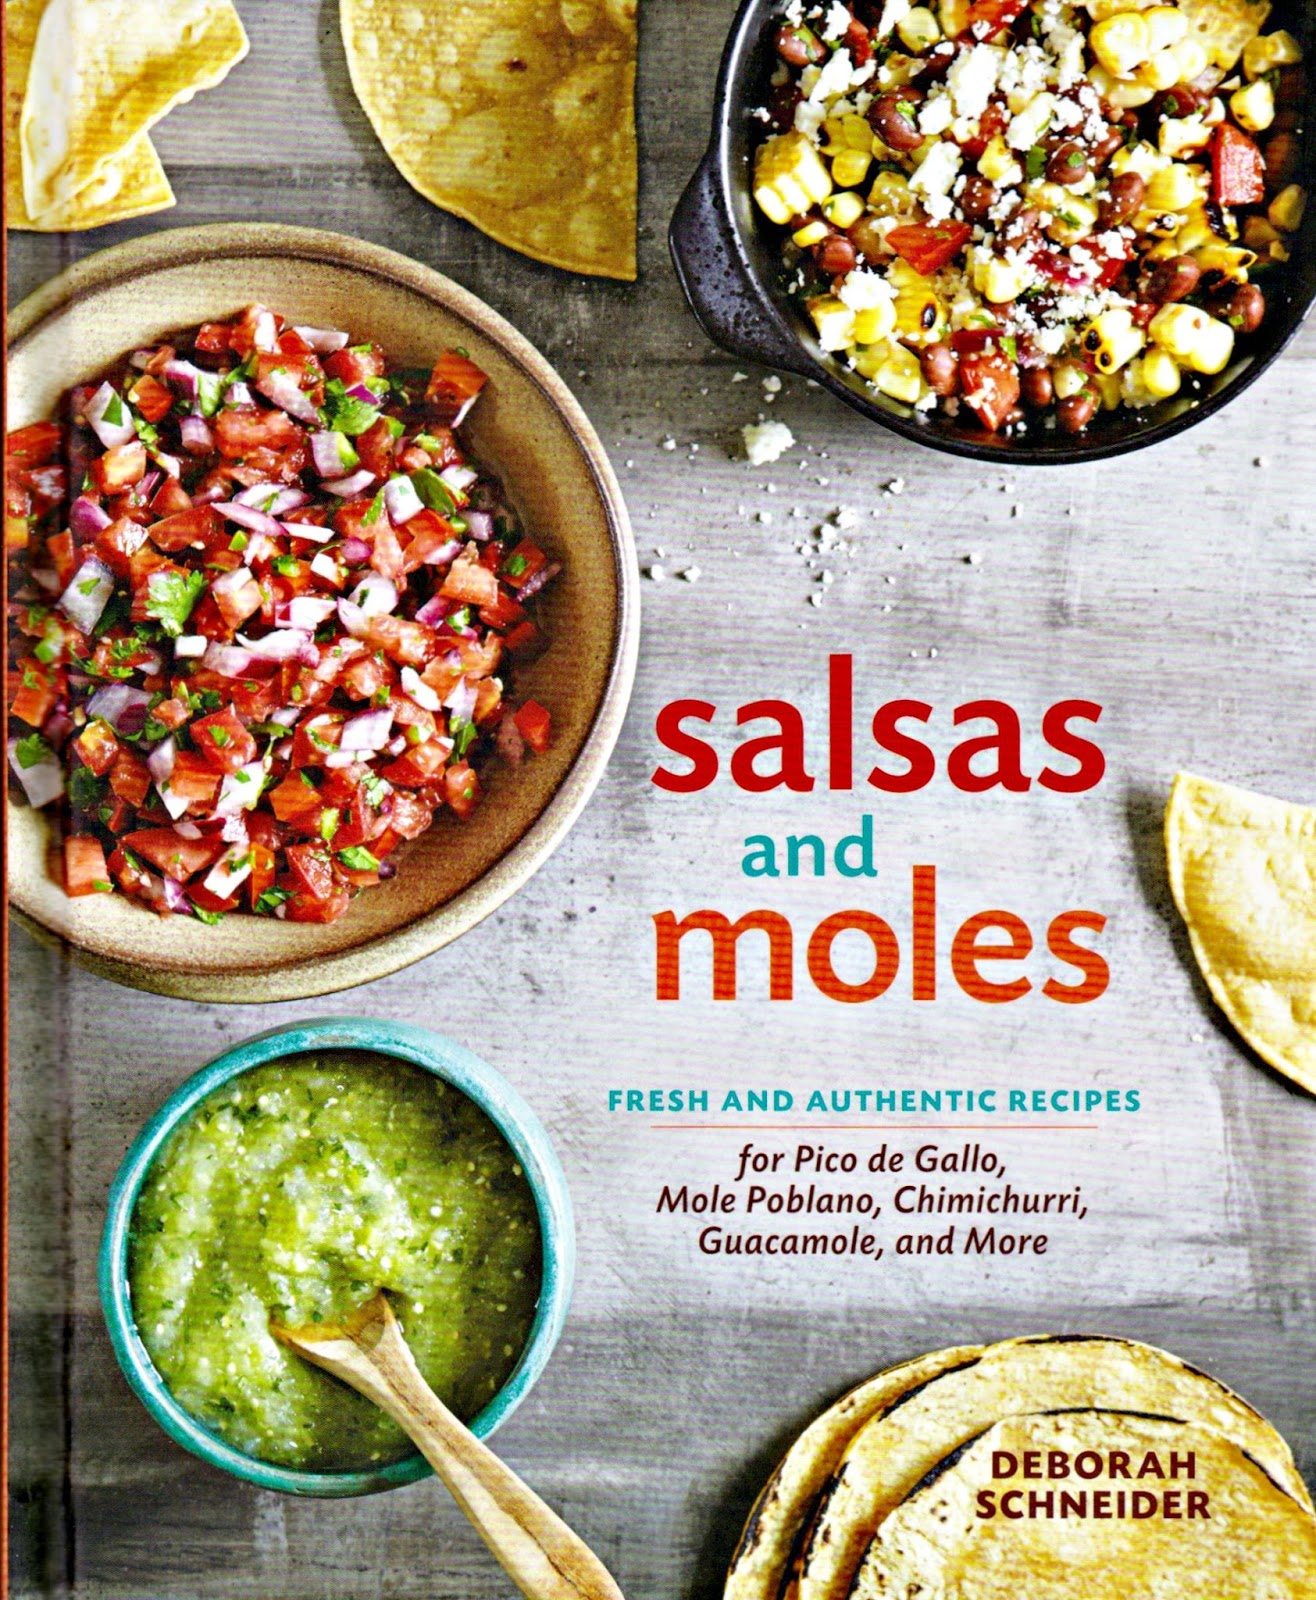 Olla podrida salsas and moles by deborah schneider a spicy review if you know me and my love for mexican food then you can only imagine my delight at receiving this book what a fabulous addition to my ever growing forumfinder Images